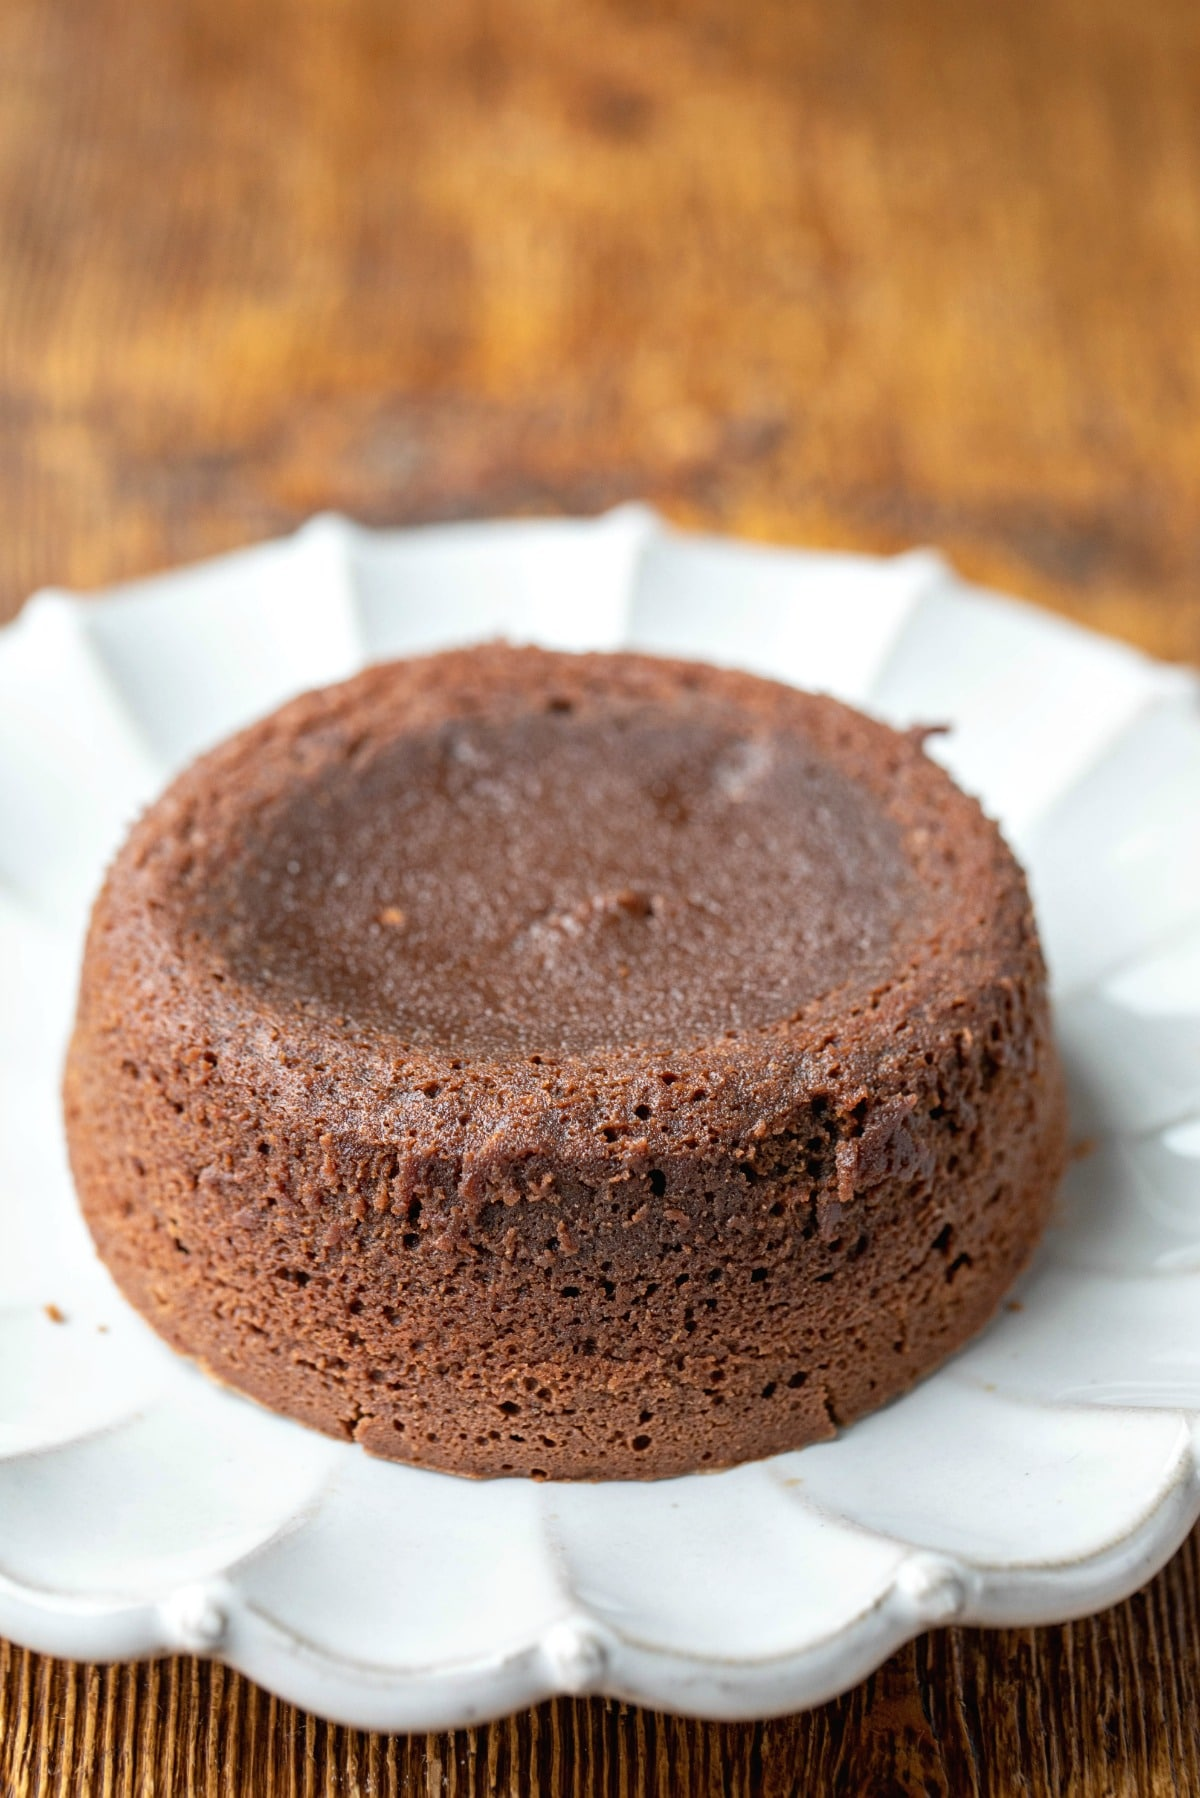 Baked molten chocolate cake on a white scalloped plate